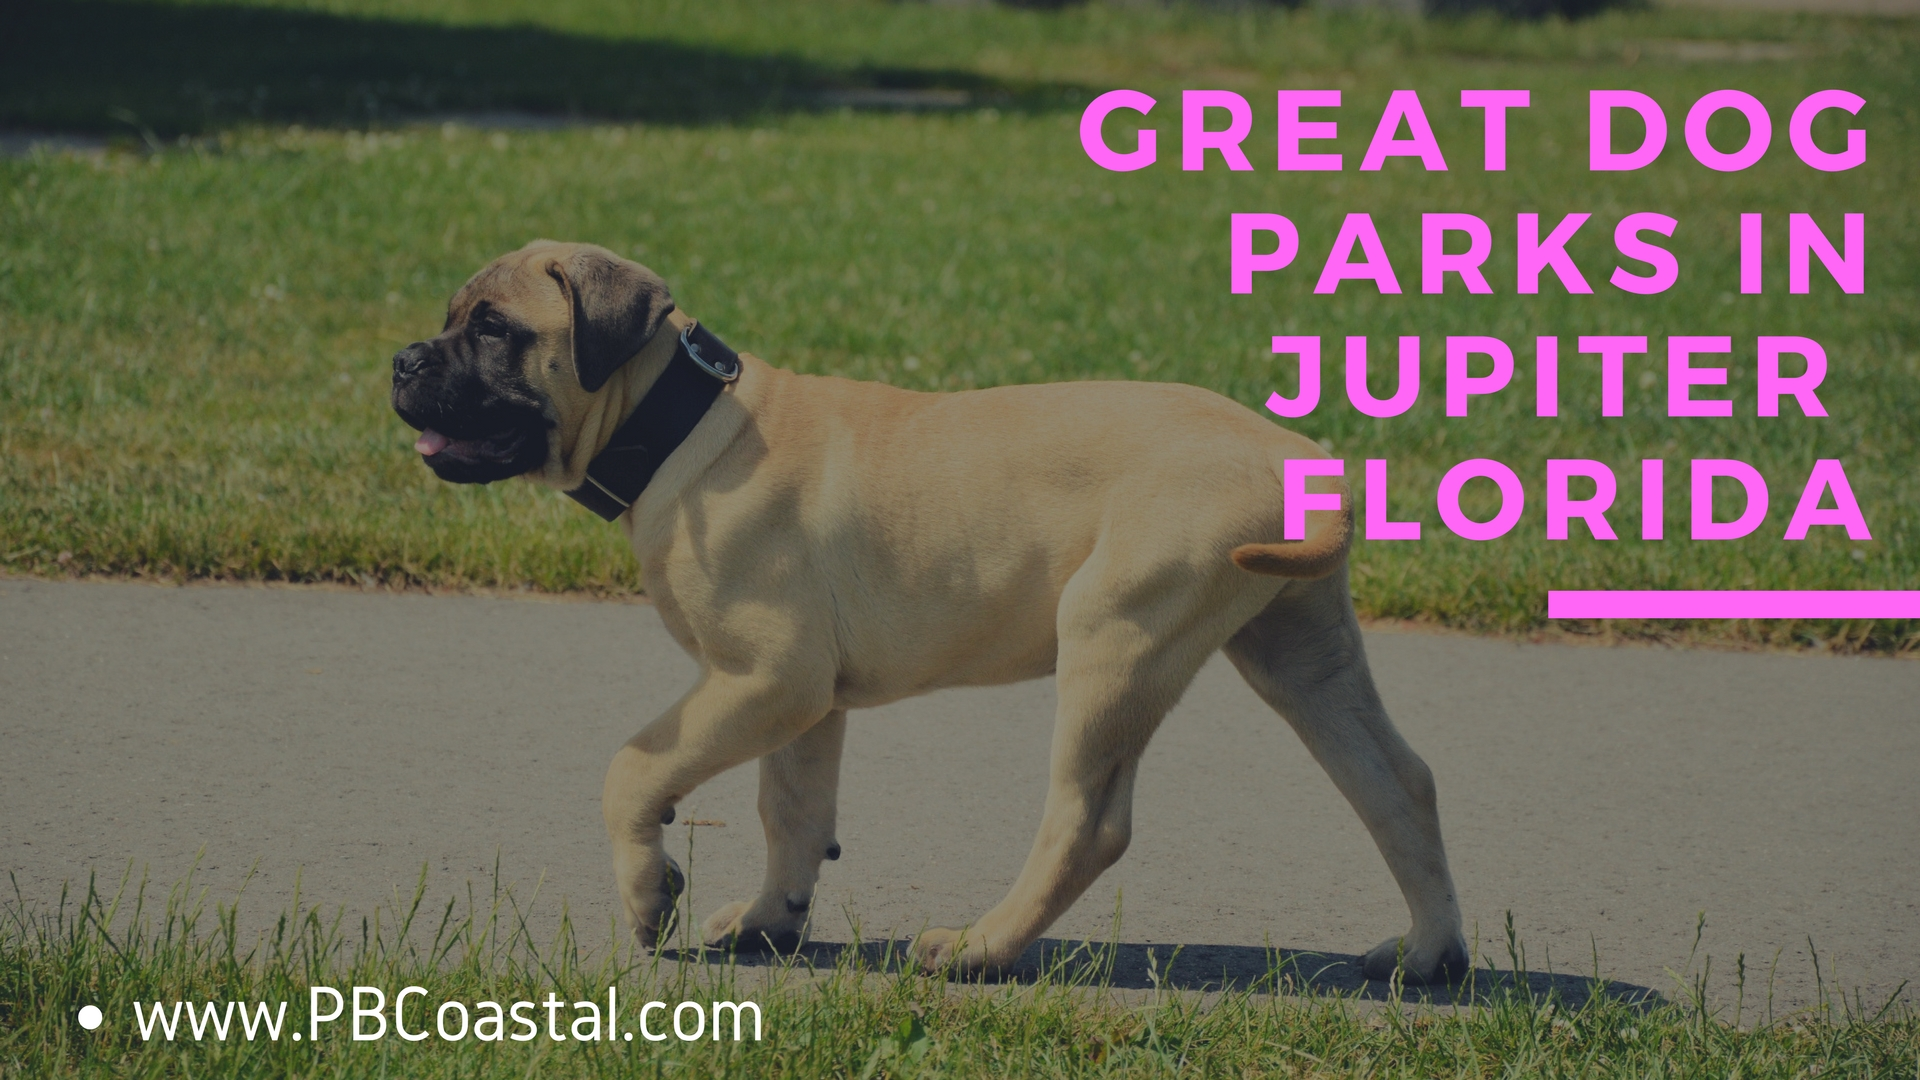 Dog parks in Jupiter